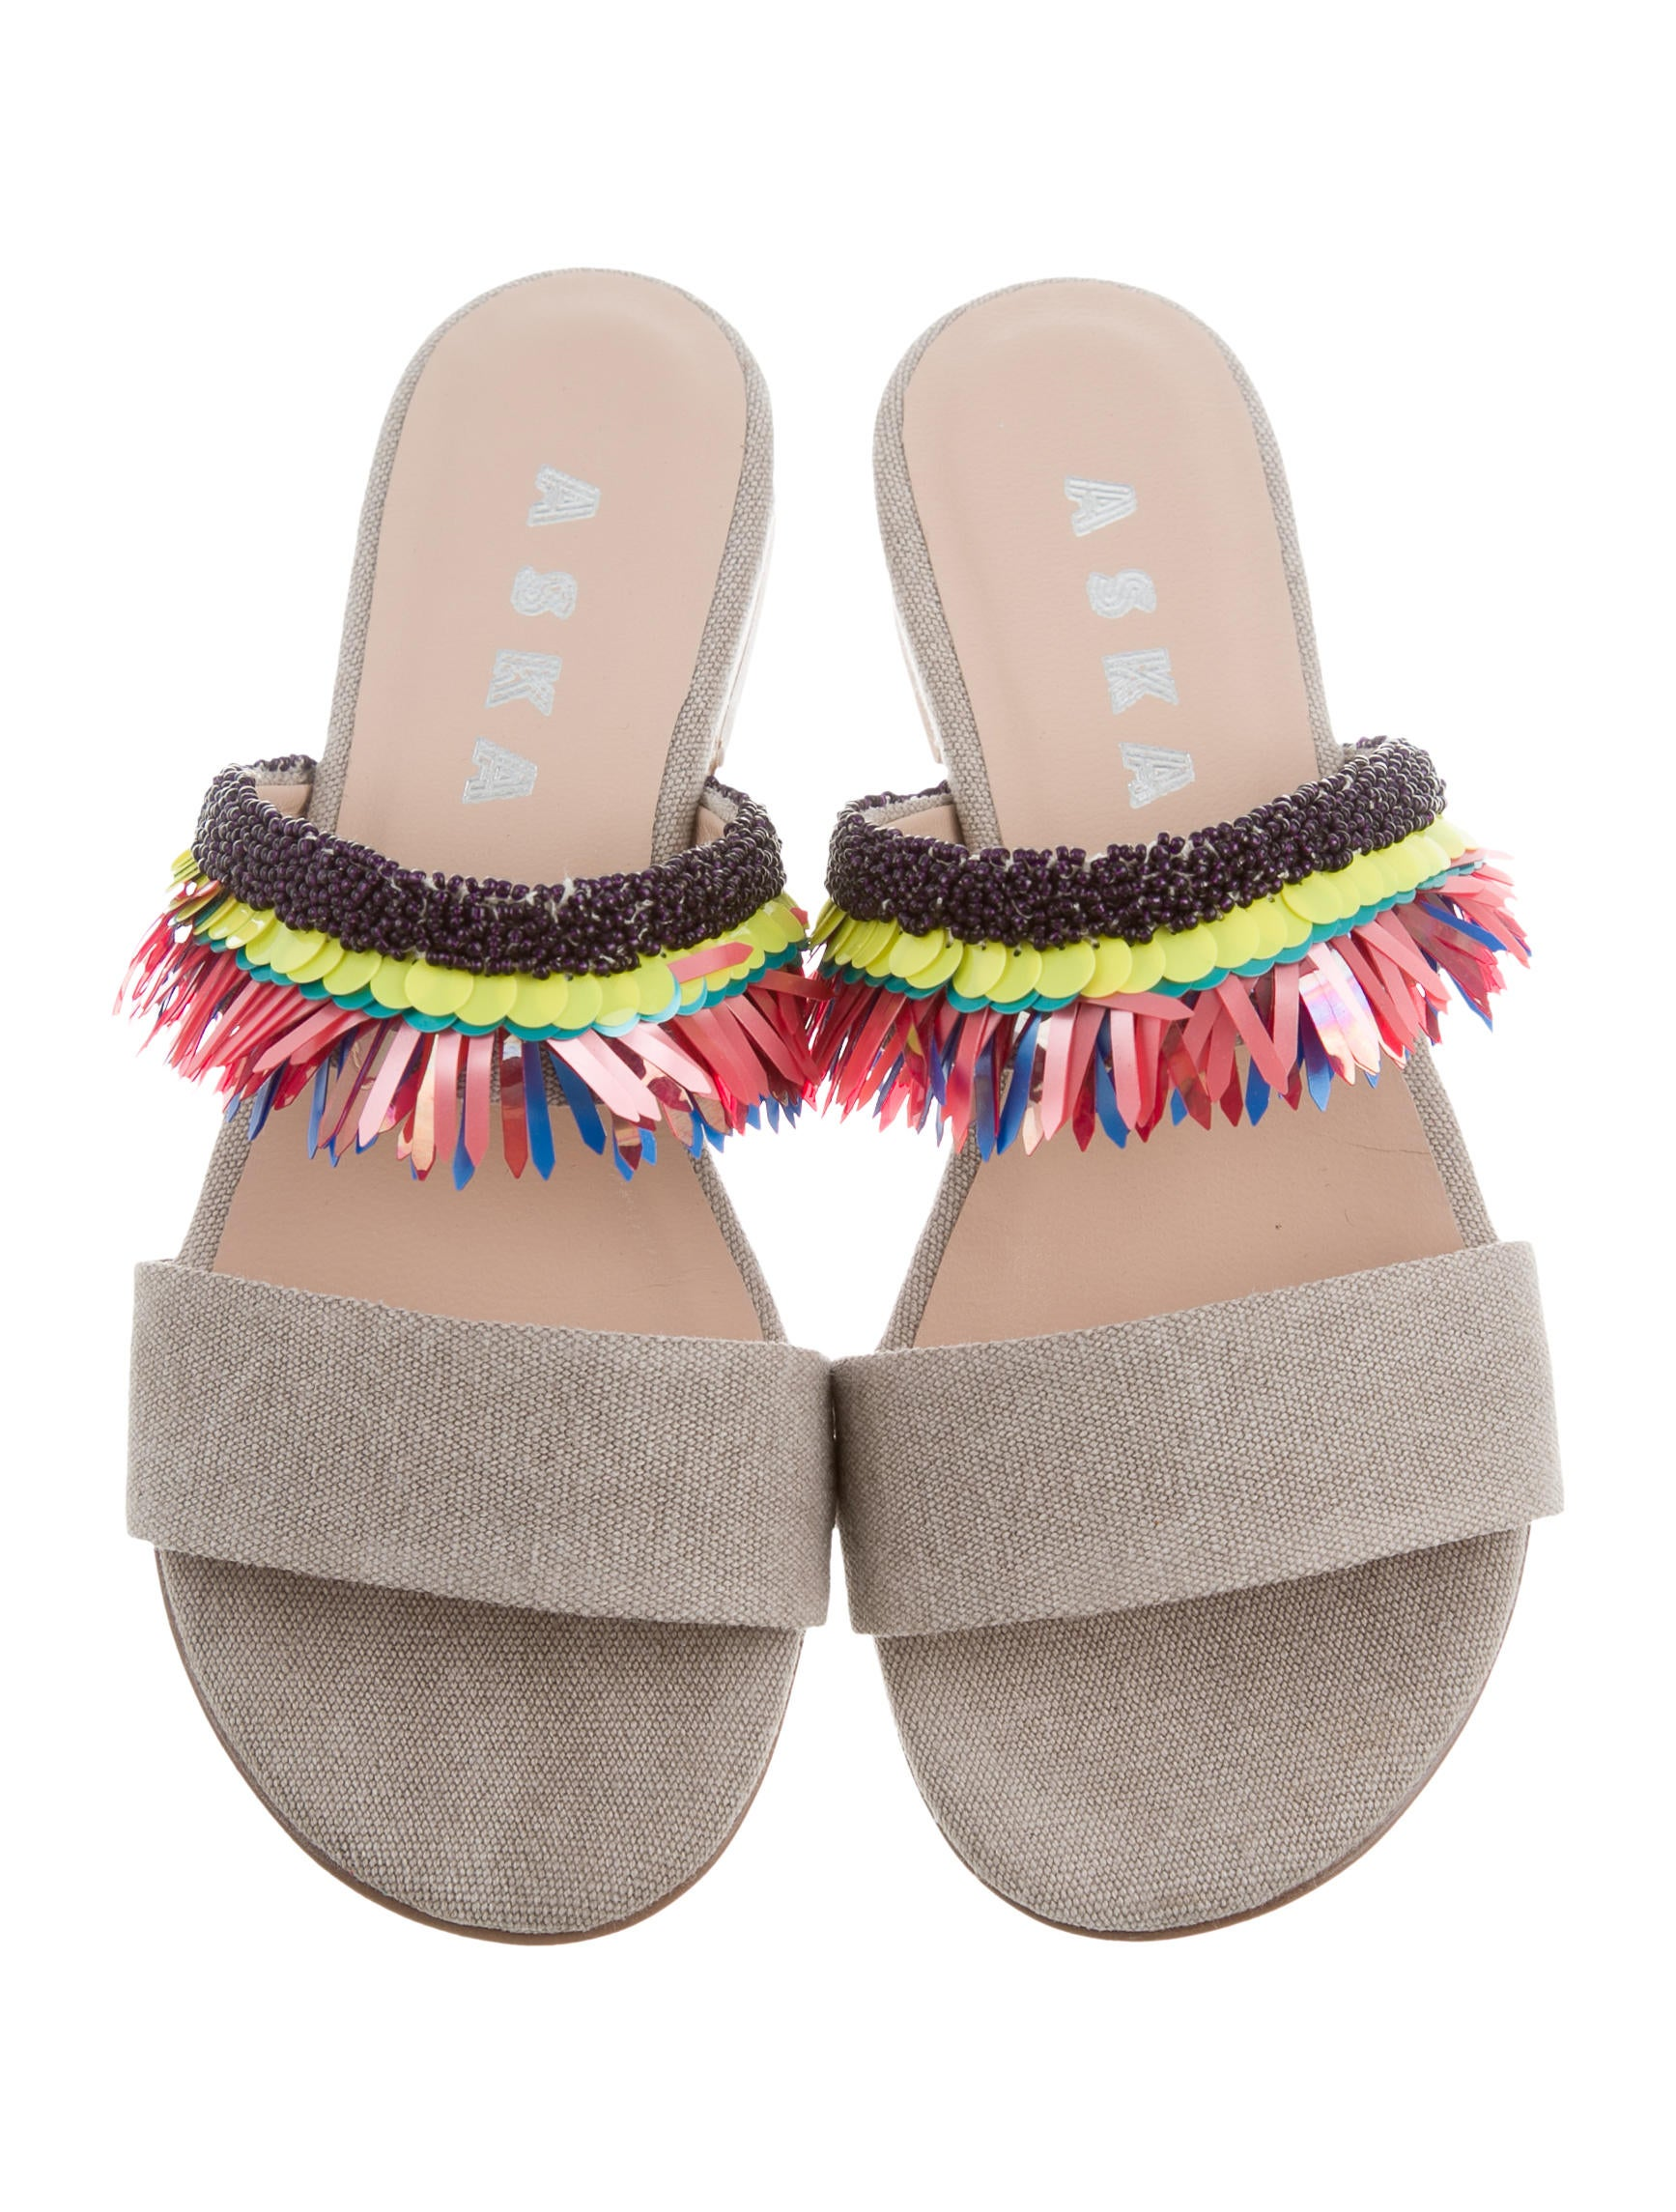 Aska Emme Bead-Embellished Sandals w/ Tags discount authentic online lZ2CS84JIe